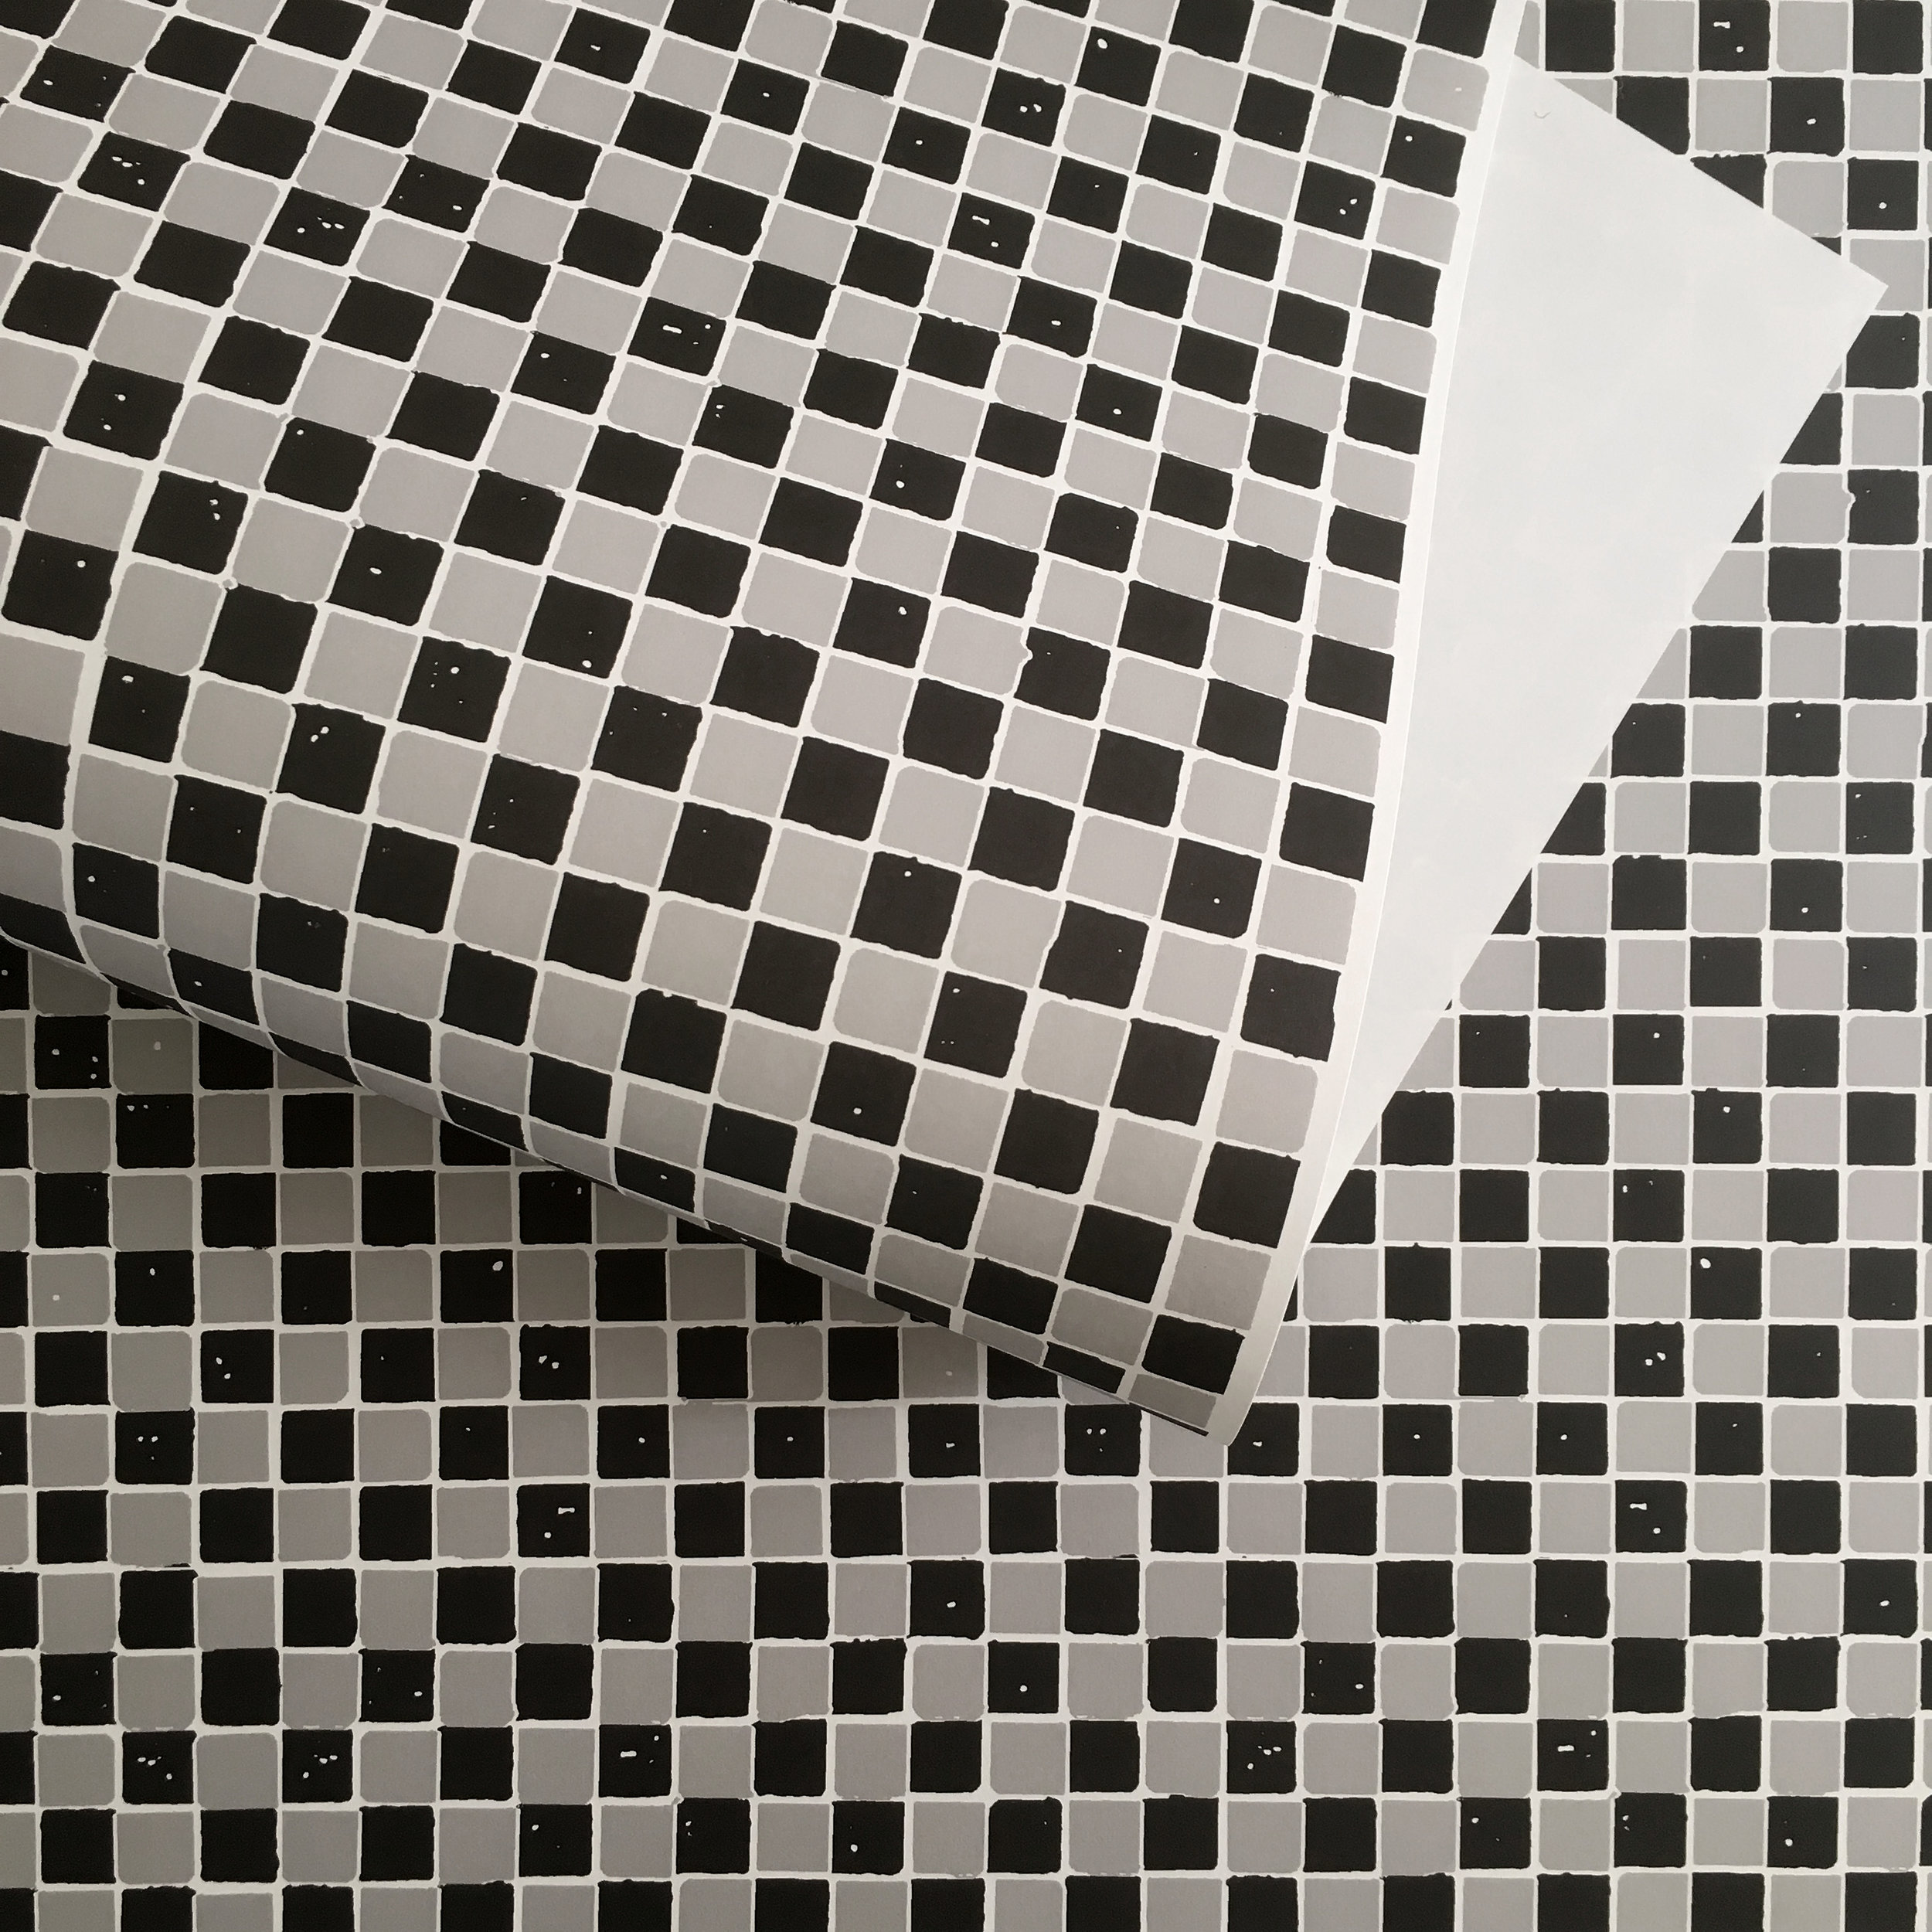 Wrapping paper, checkerboard b/g: WP_CBBG_01